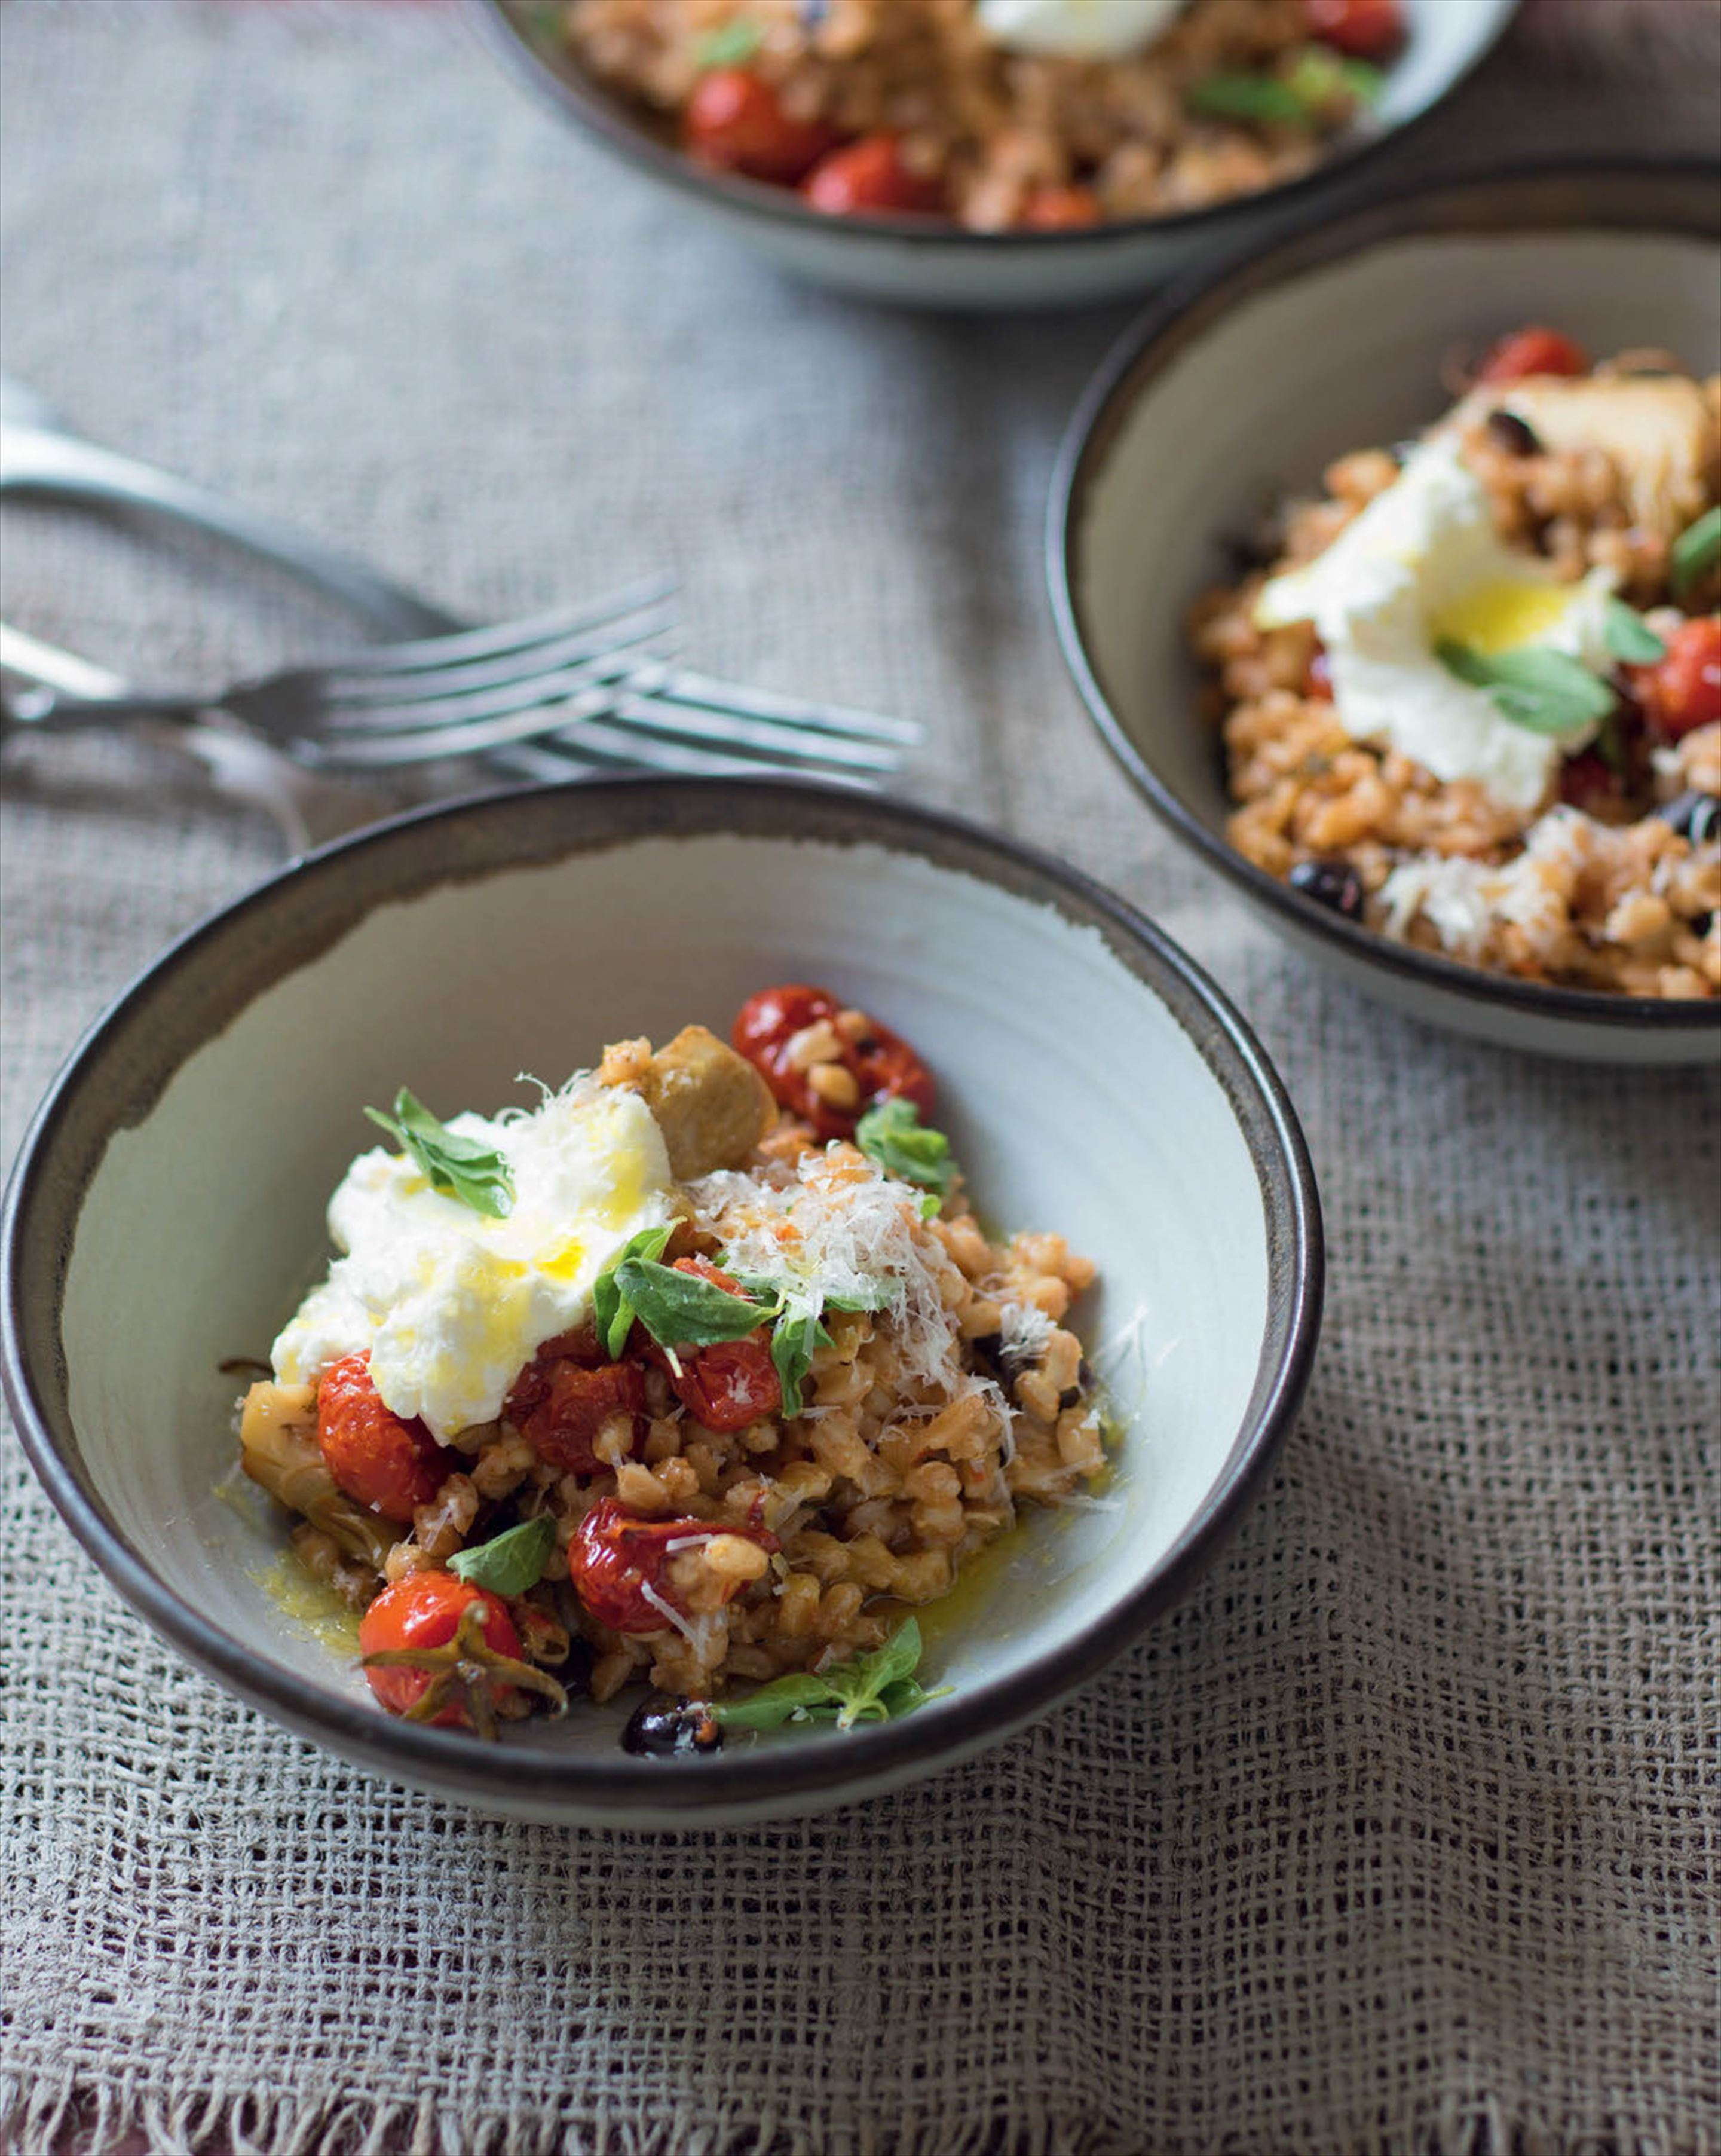 Farro with slow-roasted tomatoes, artichokes, olives & oregano